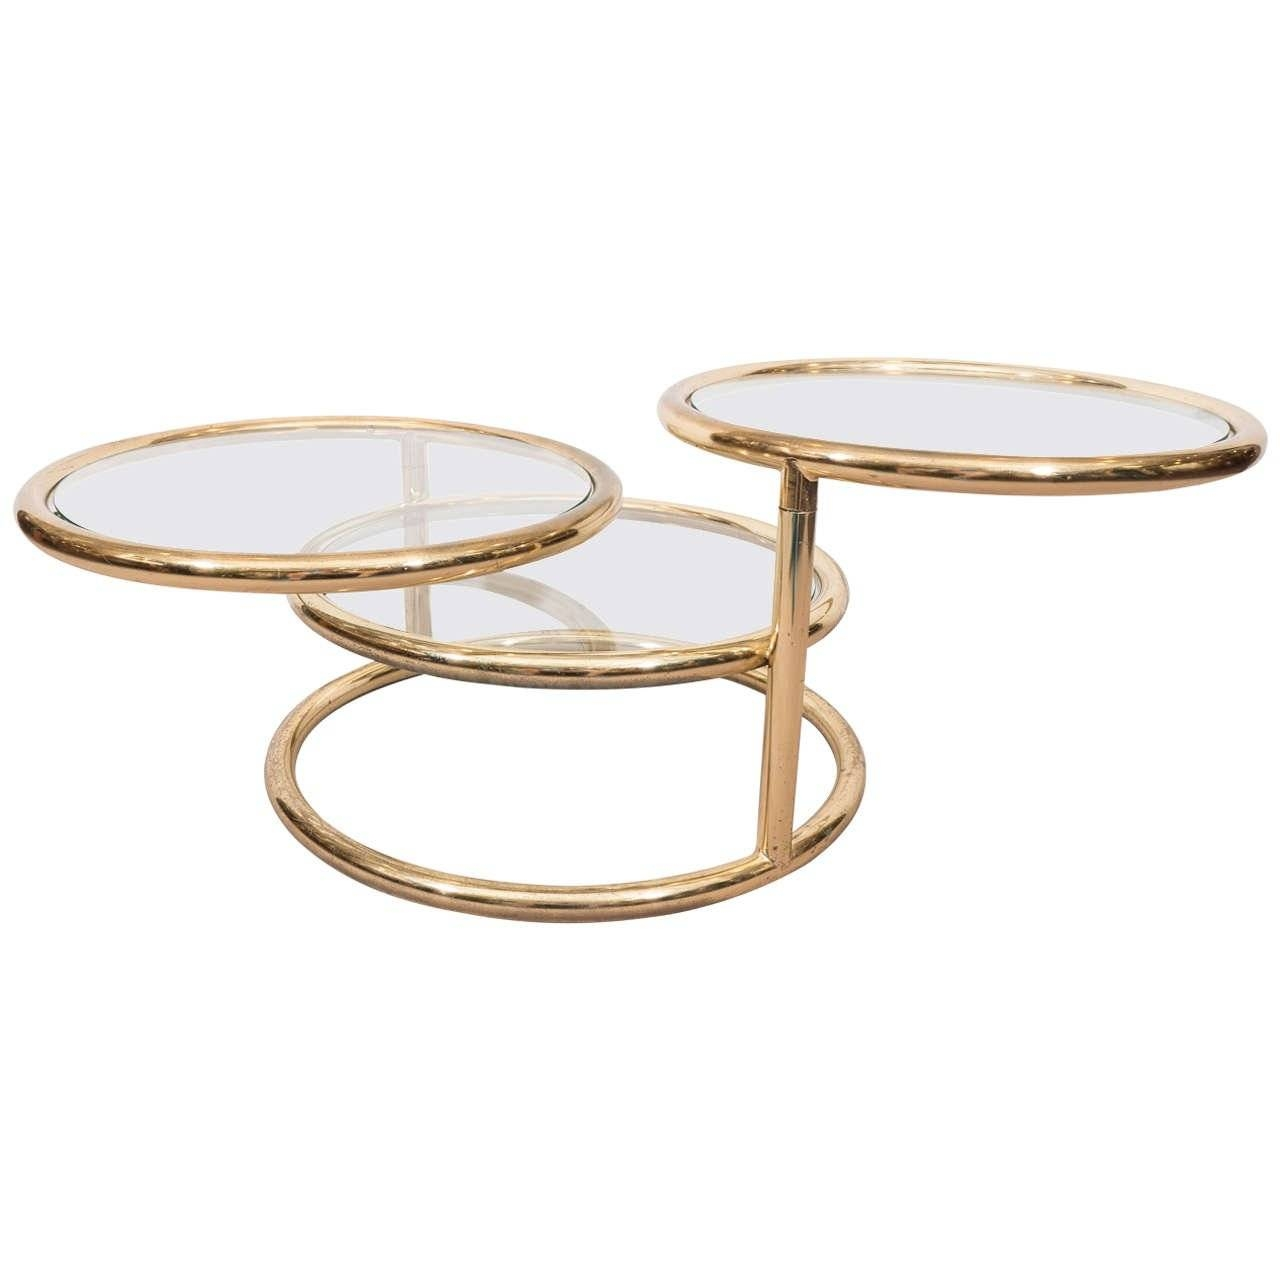 Furniture: Swivel Coffee Table | Kidney Shaped Coffee Table for Swivel Coffee Tables (Image 12 of 30)